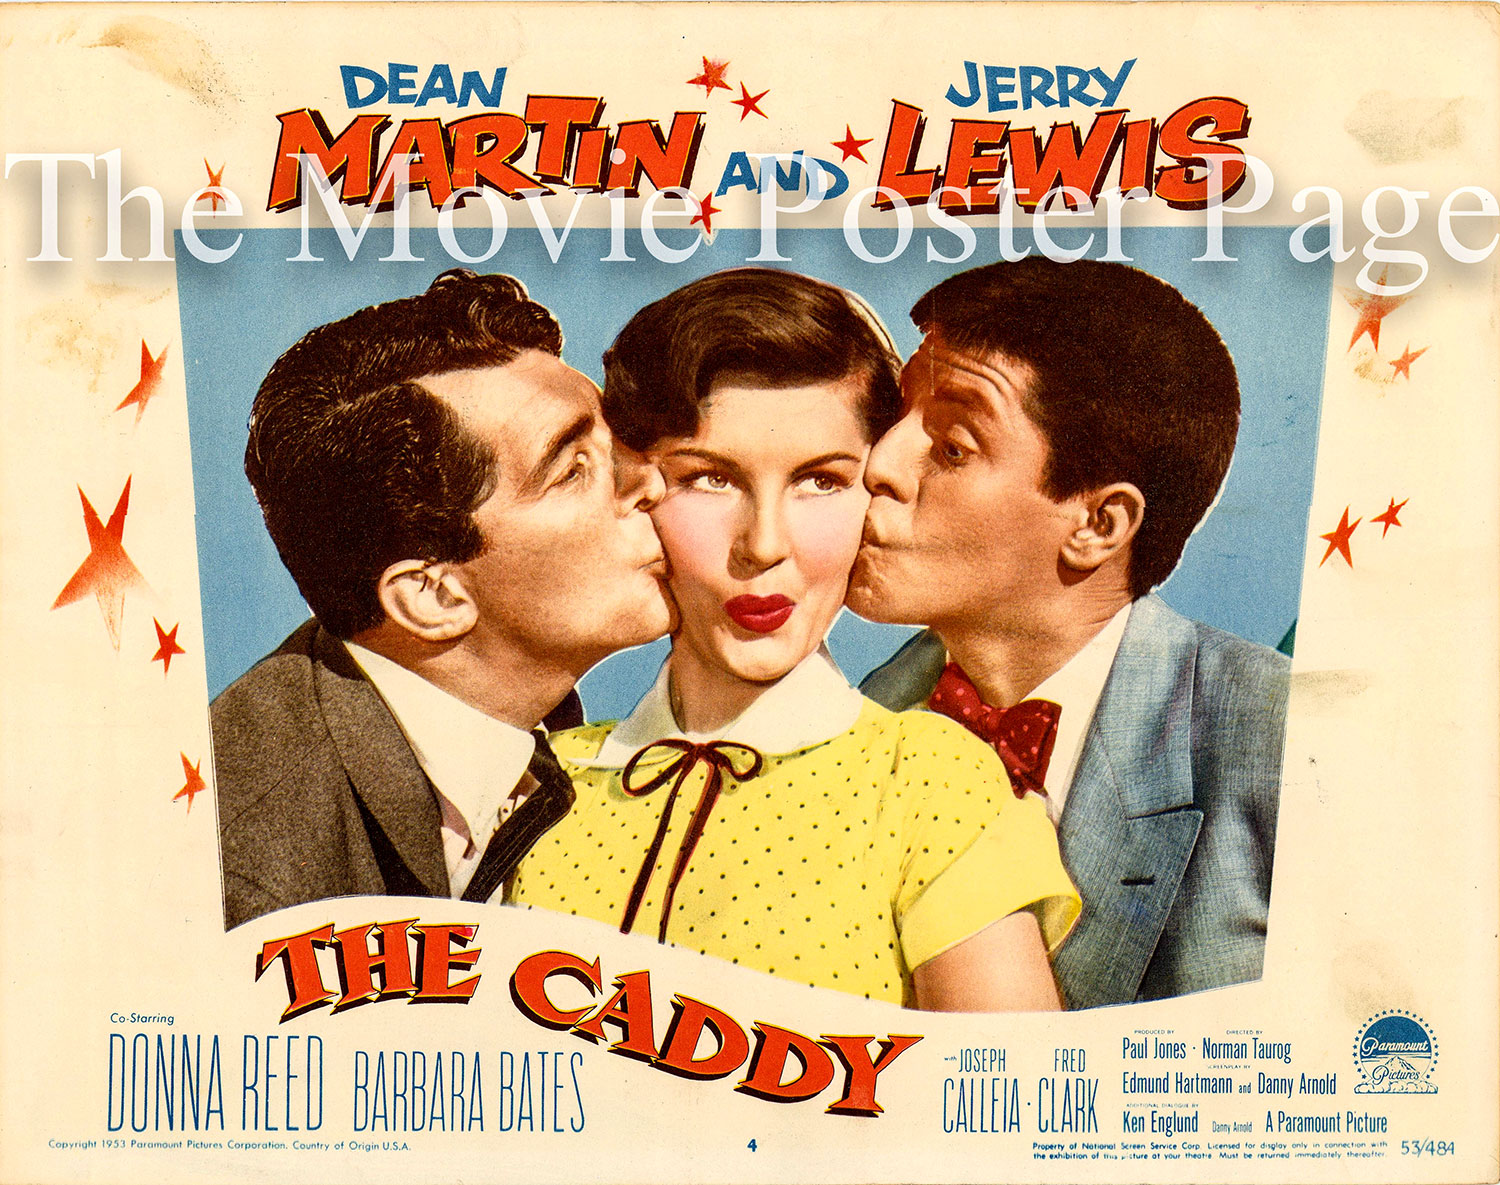 Pictured is a US lobby card for the 1953 Norman Taurog film The Caddy starring Dean Martin and Jerry Lewis.